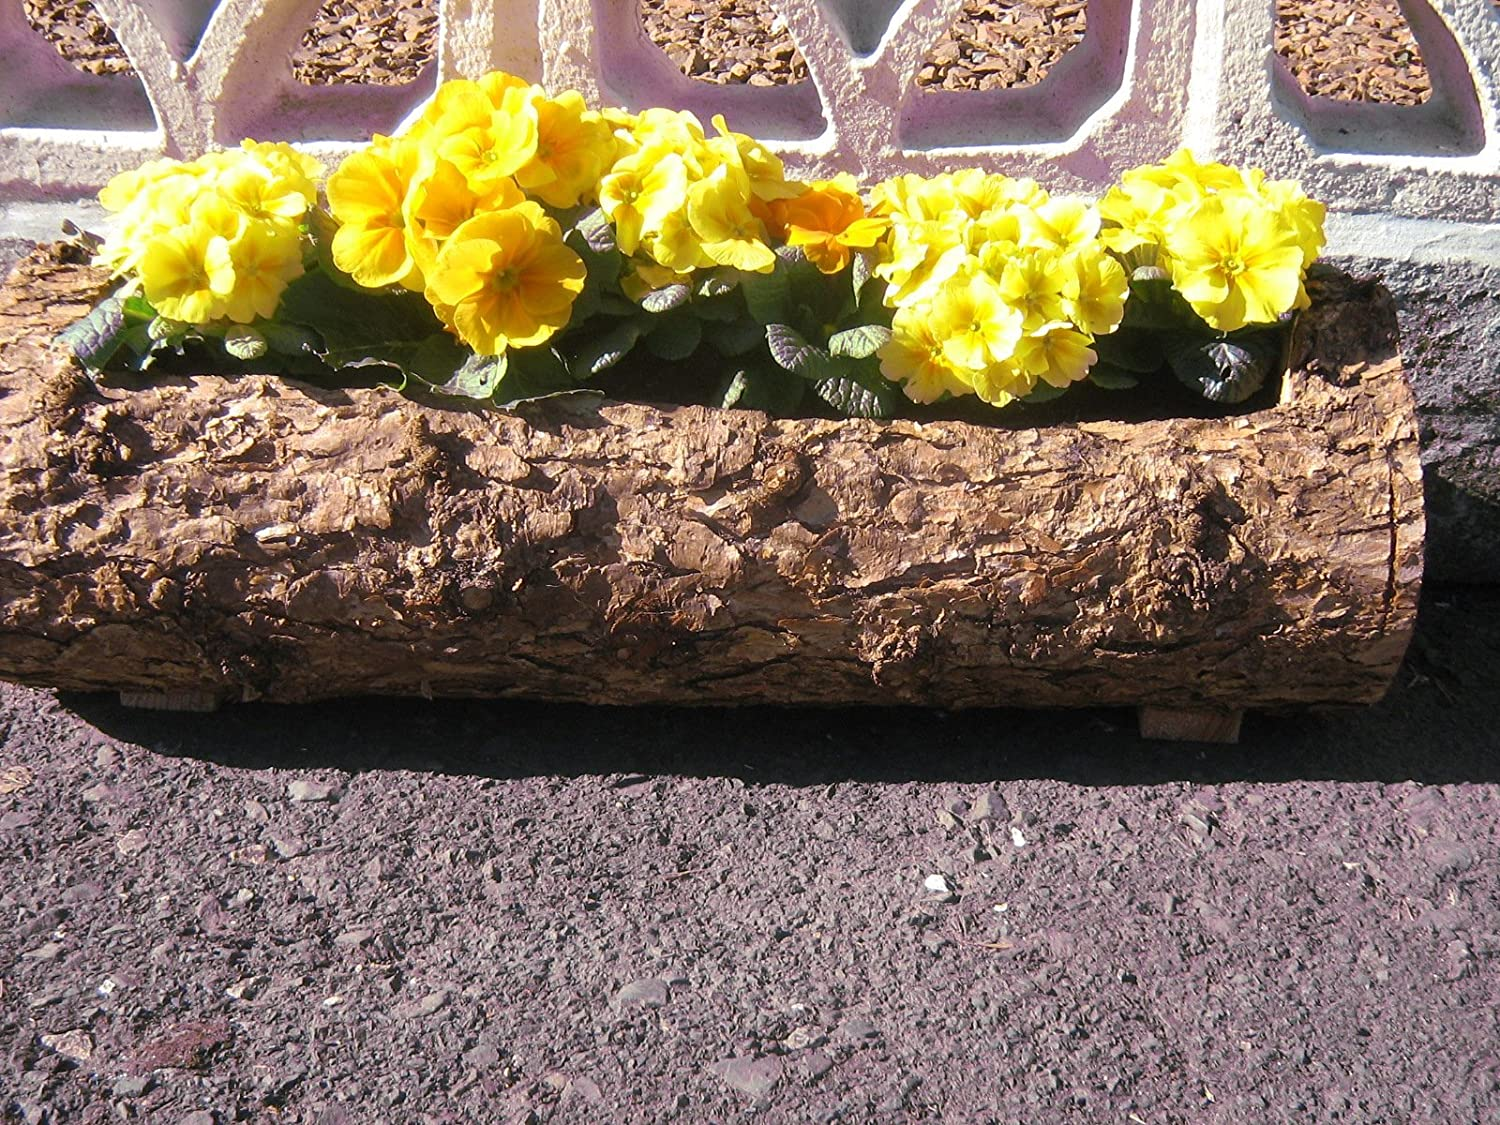 Dalrymple Woodcraft Planter Wooden Larch Log Natural Window Box Bark-Retained 75 cm